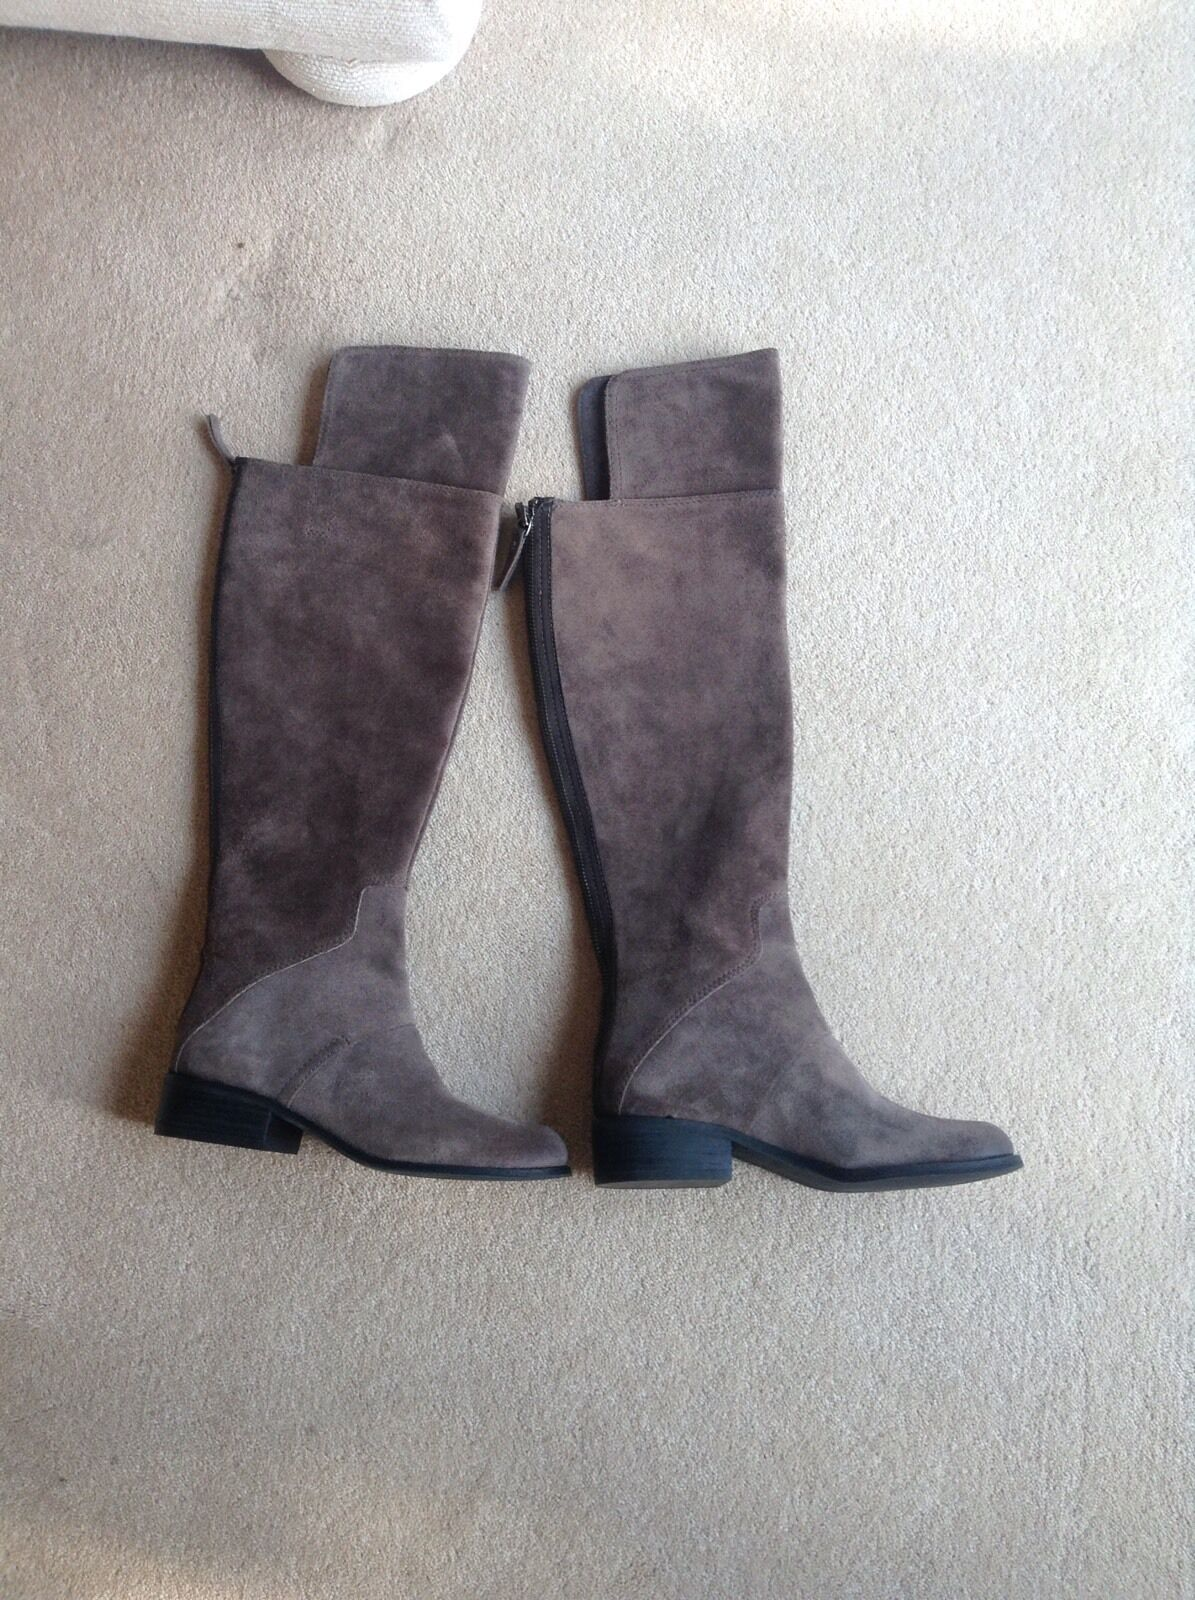 NINE WEST BRAND NEU BOOTS OVER THE KNEE GREY SUEDE SIZE 3 USA 5M